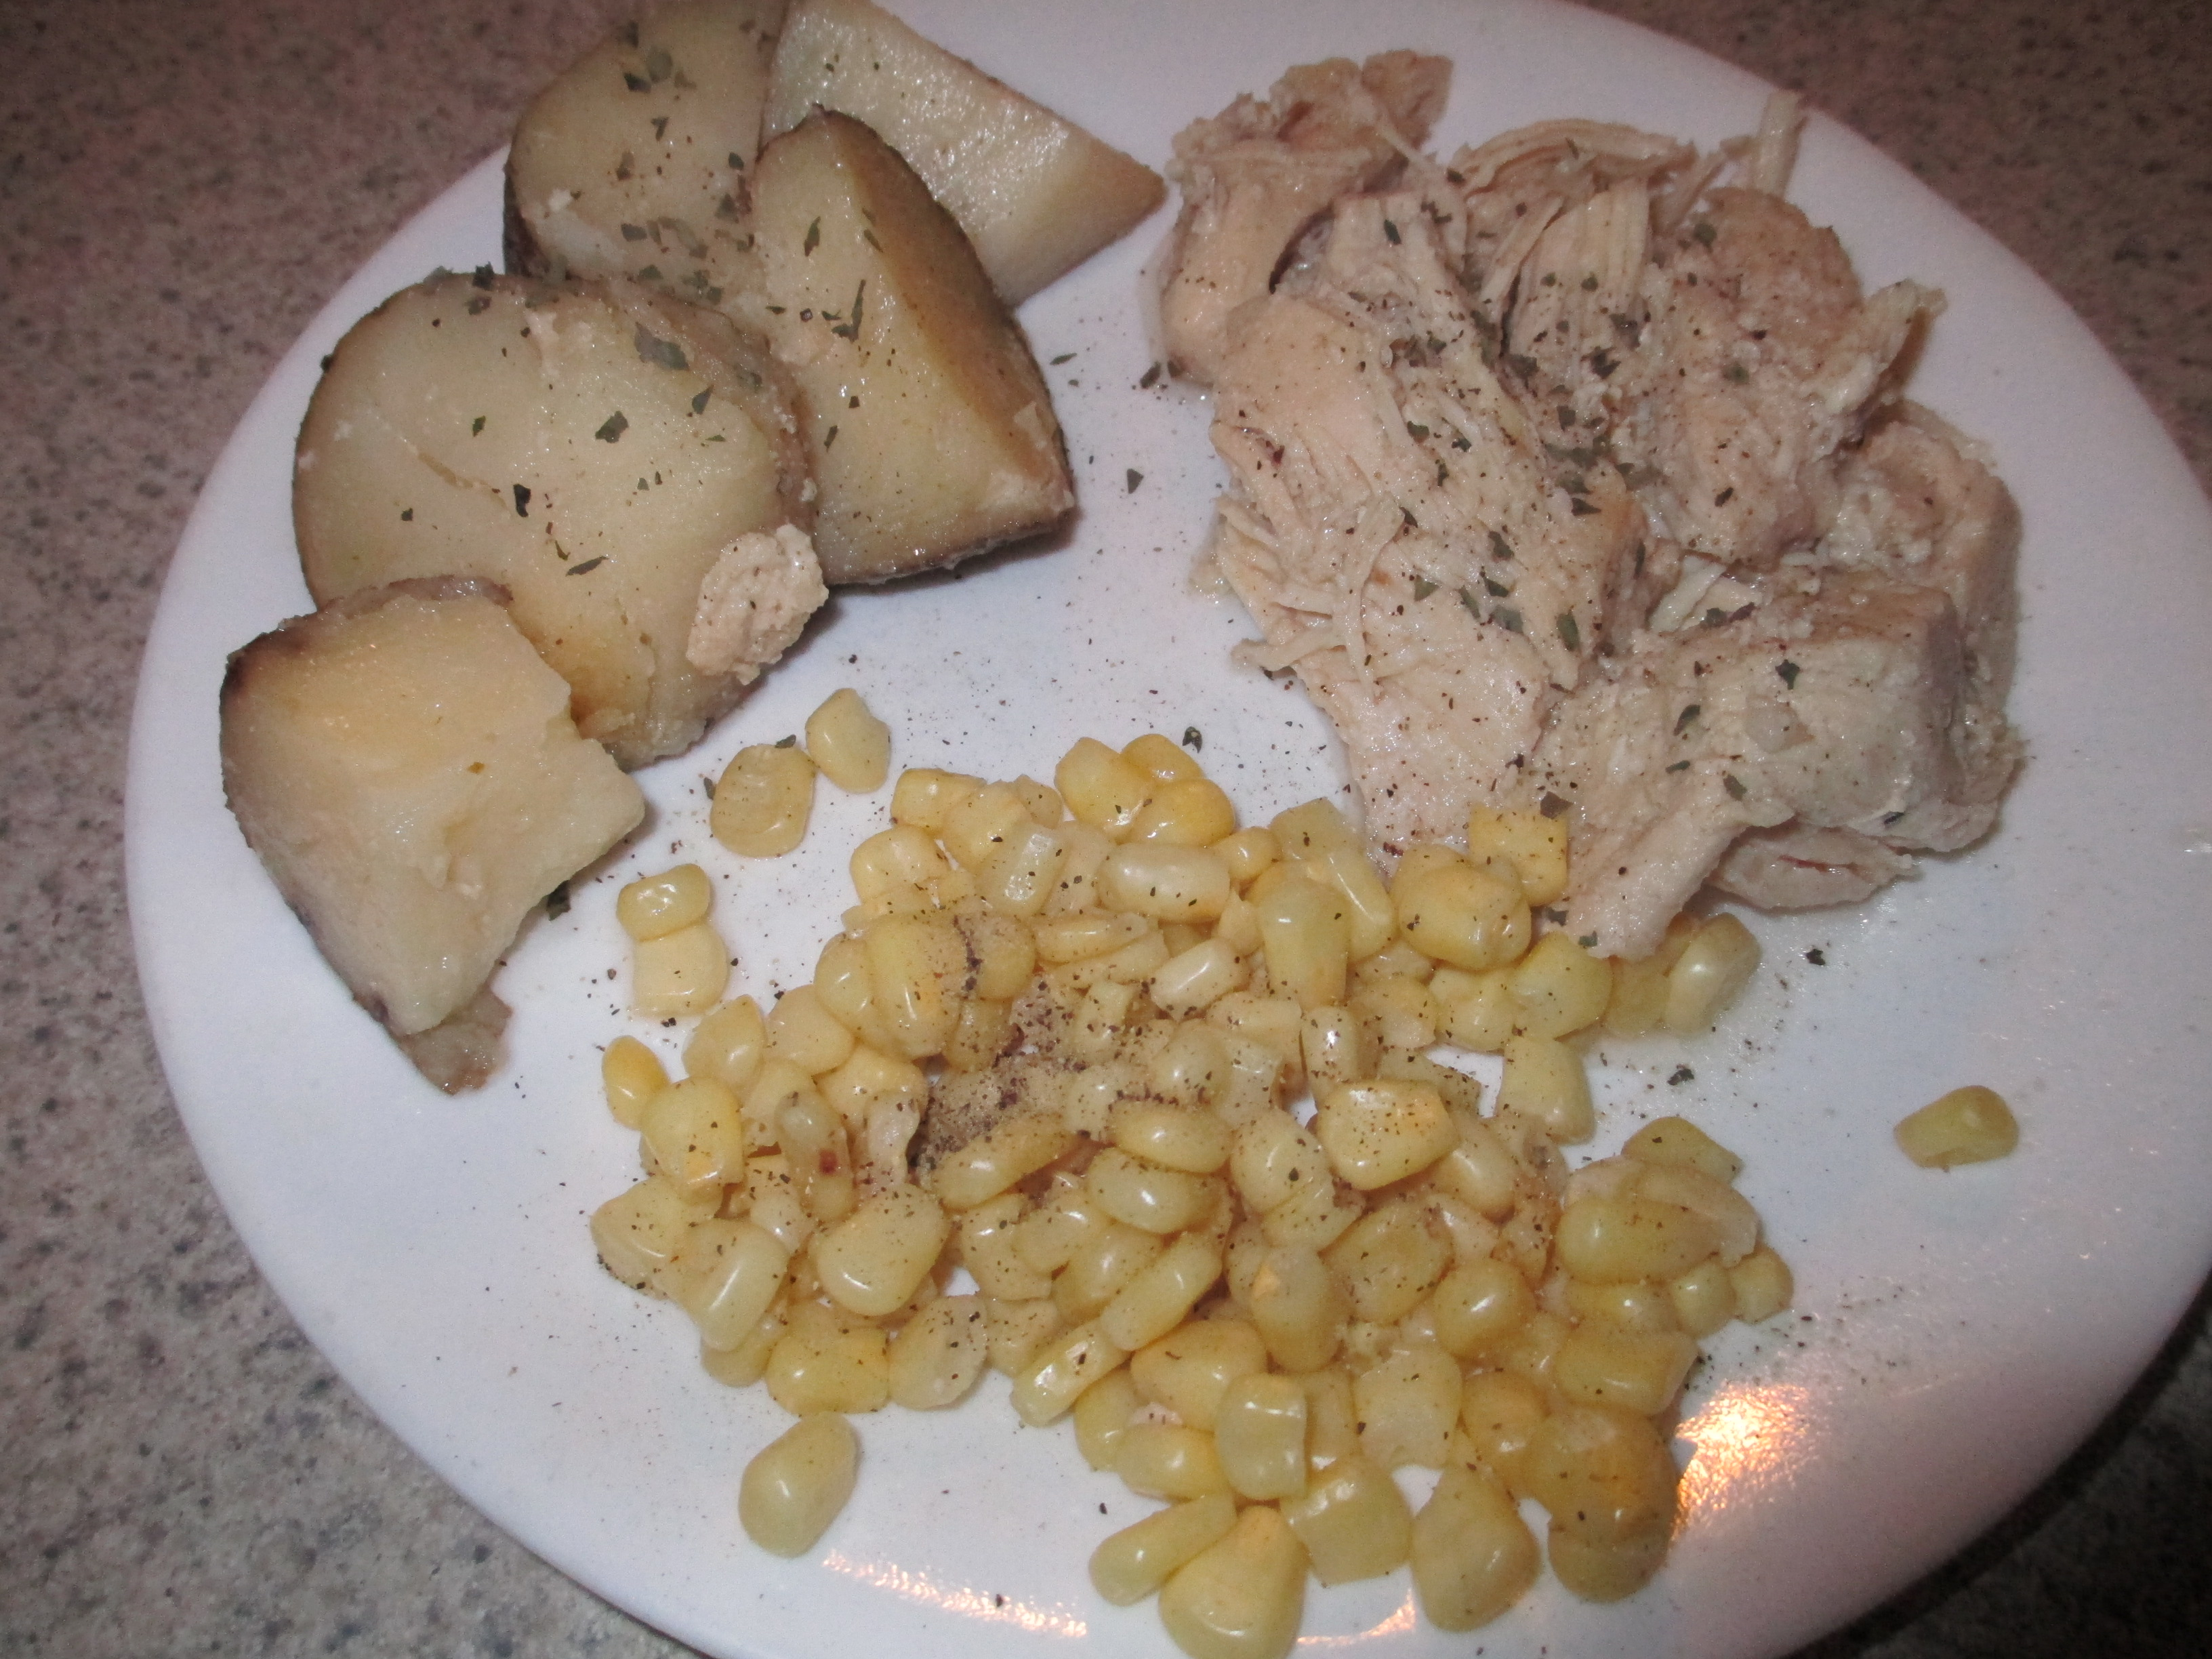 Italian Crockpot Chicken and Potatoes